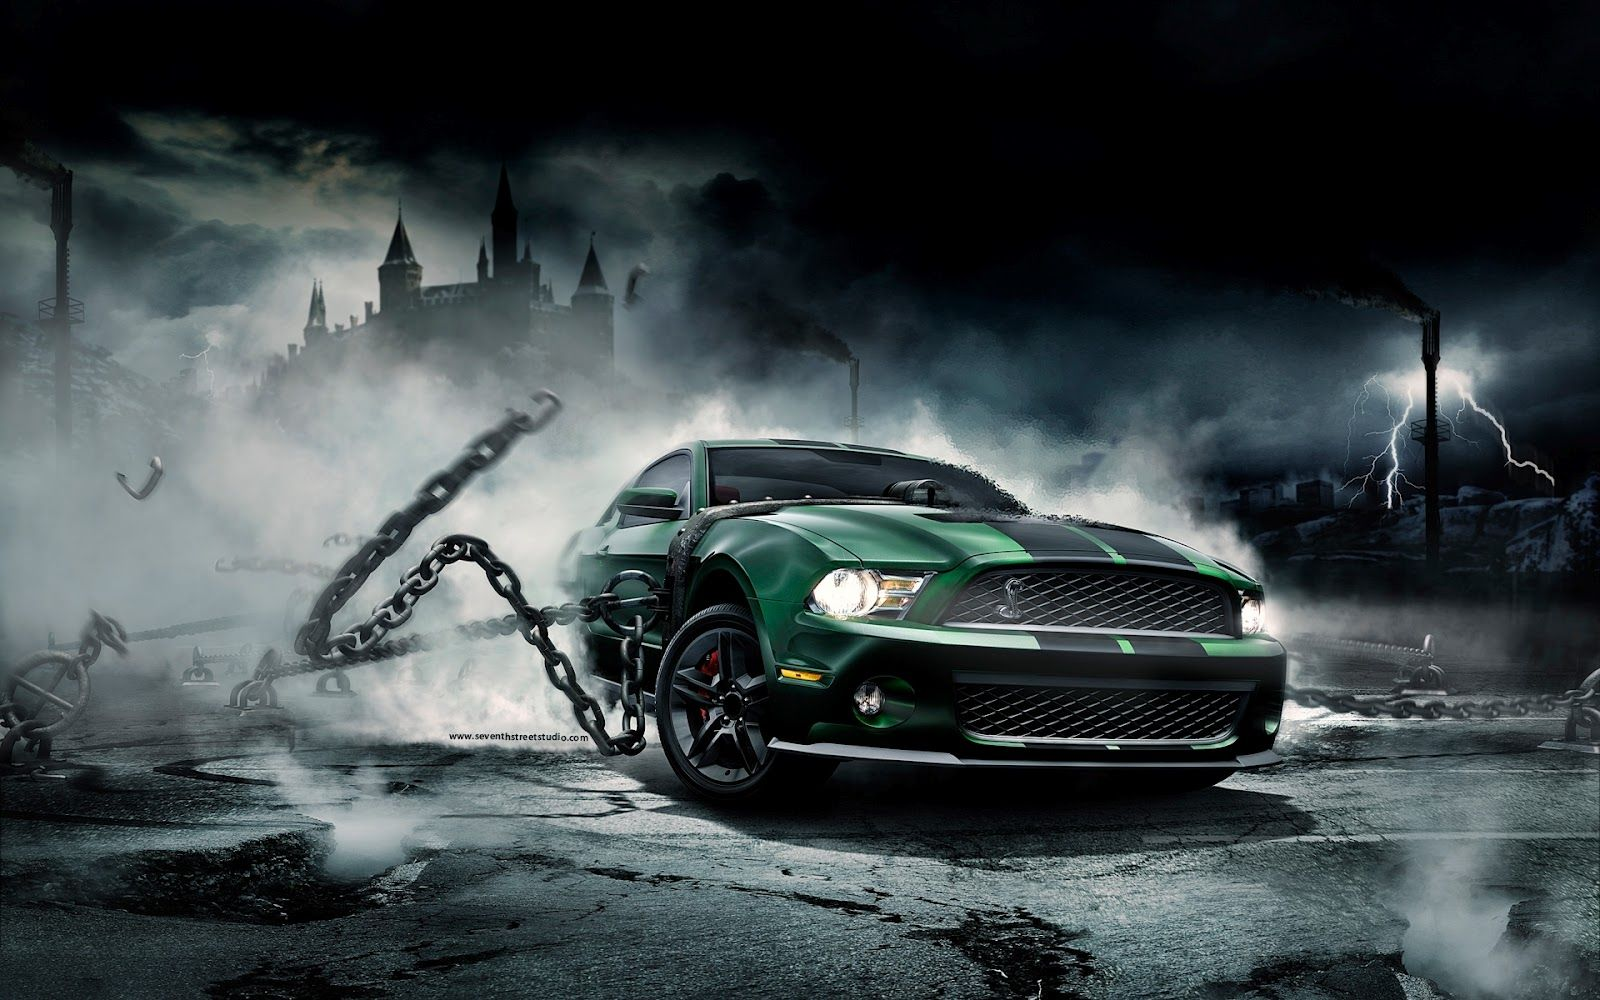 car wallpapers hd 13 Cool Backgrounds picture image or photo